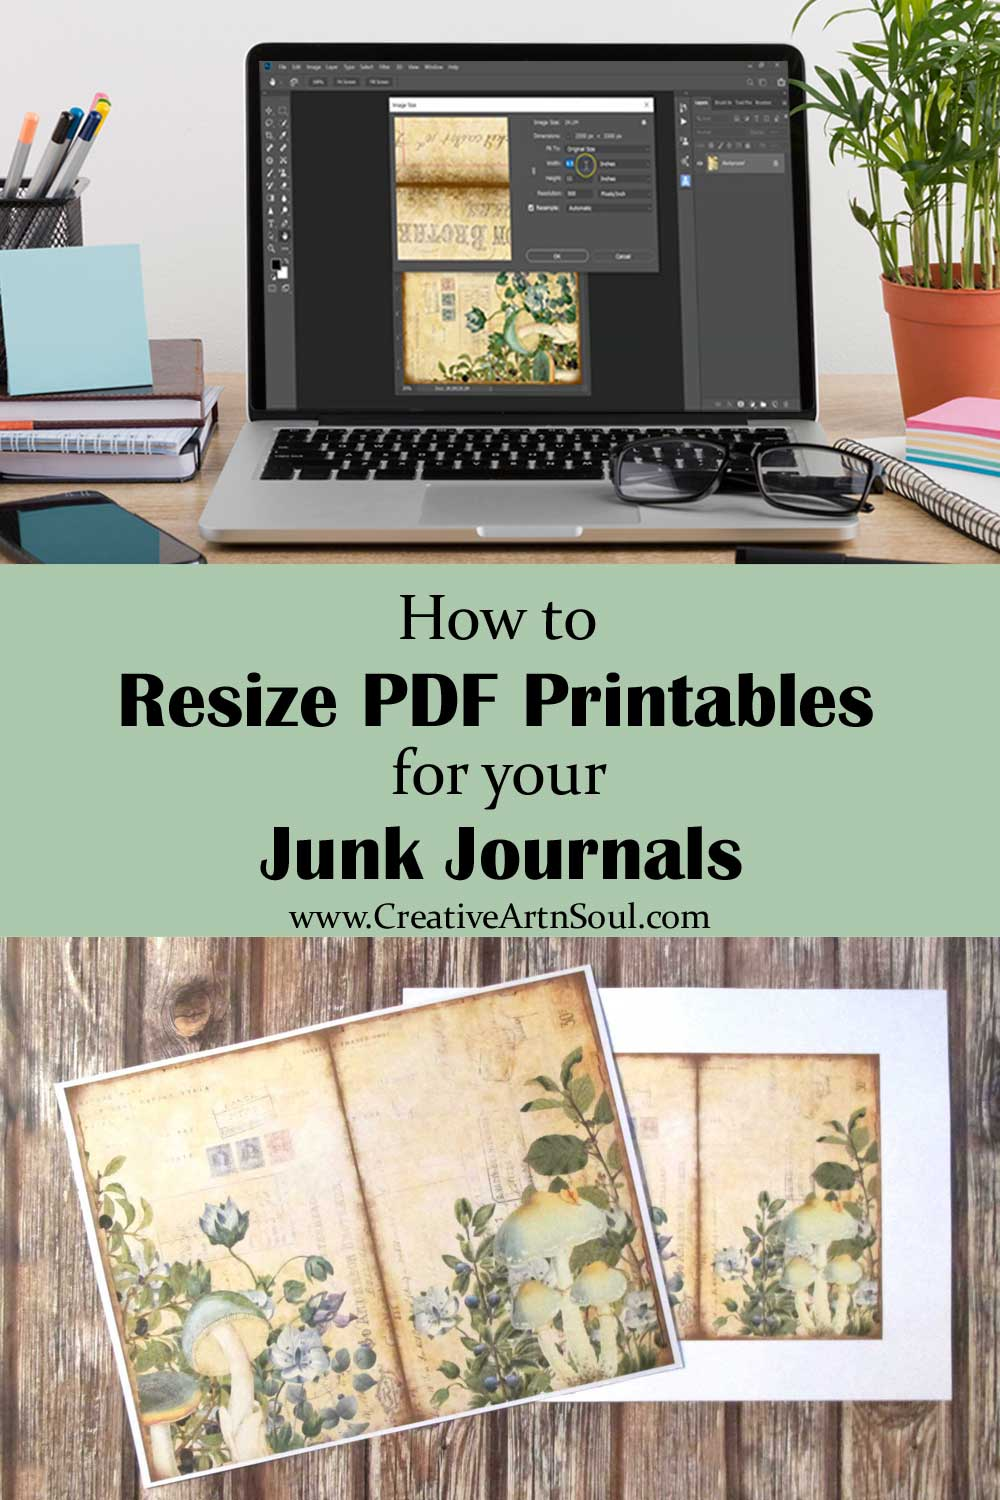 How to Resize PDF Printables for your Junk Journals